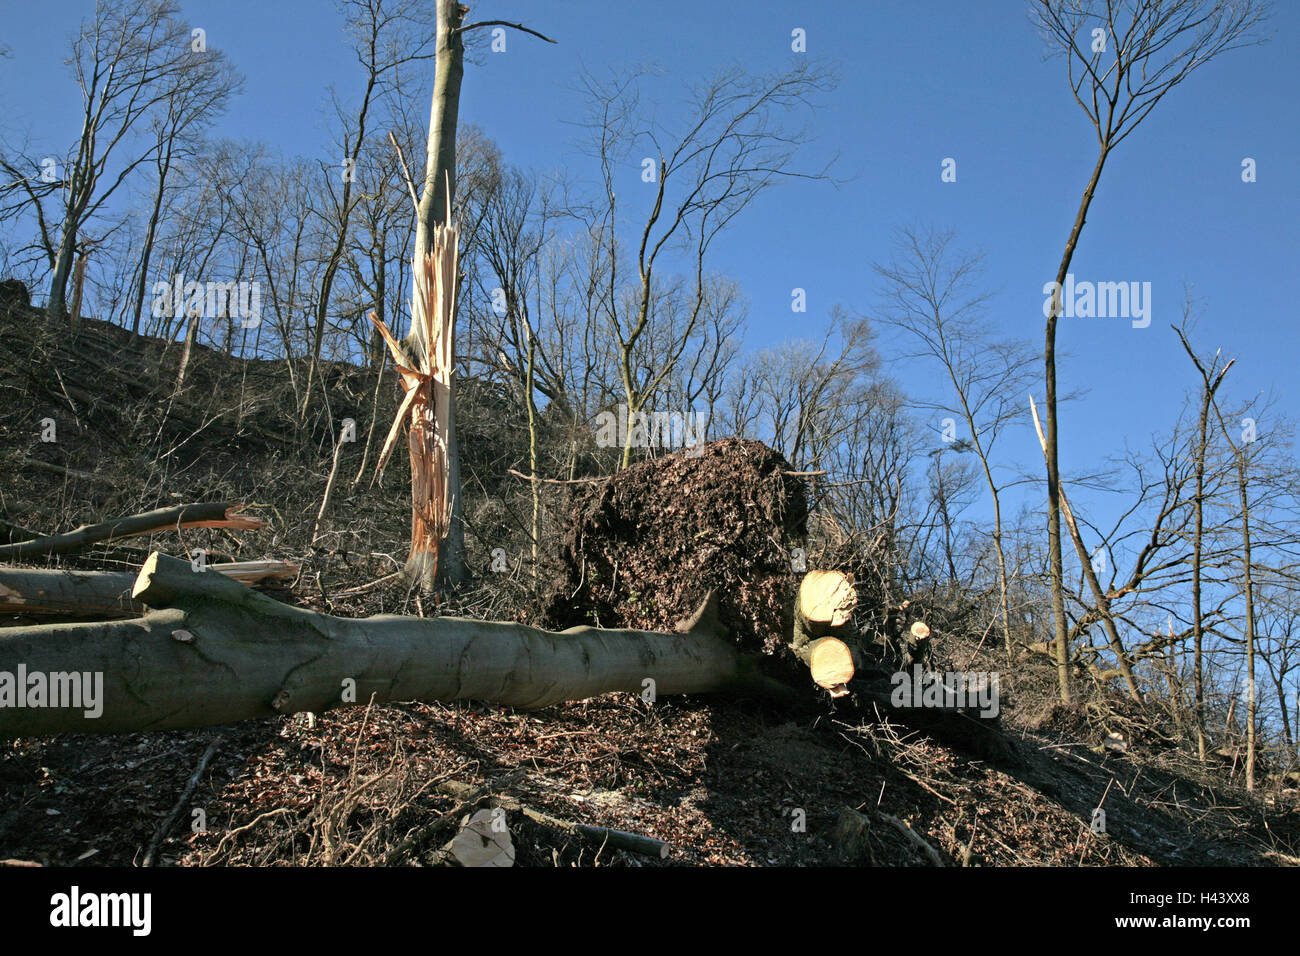 Germany, Bavaria, Landshut, barrack mountain, attack damages, Upper Bavaria, wood, trunks, twigs, branches, lie, - Stock Image